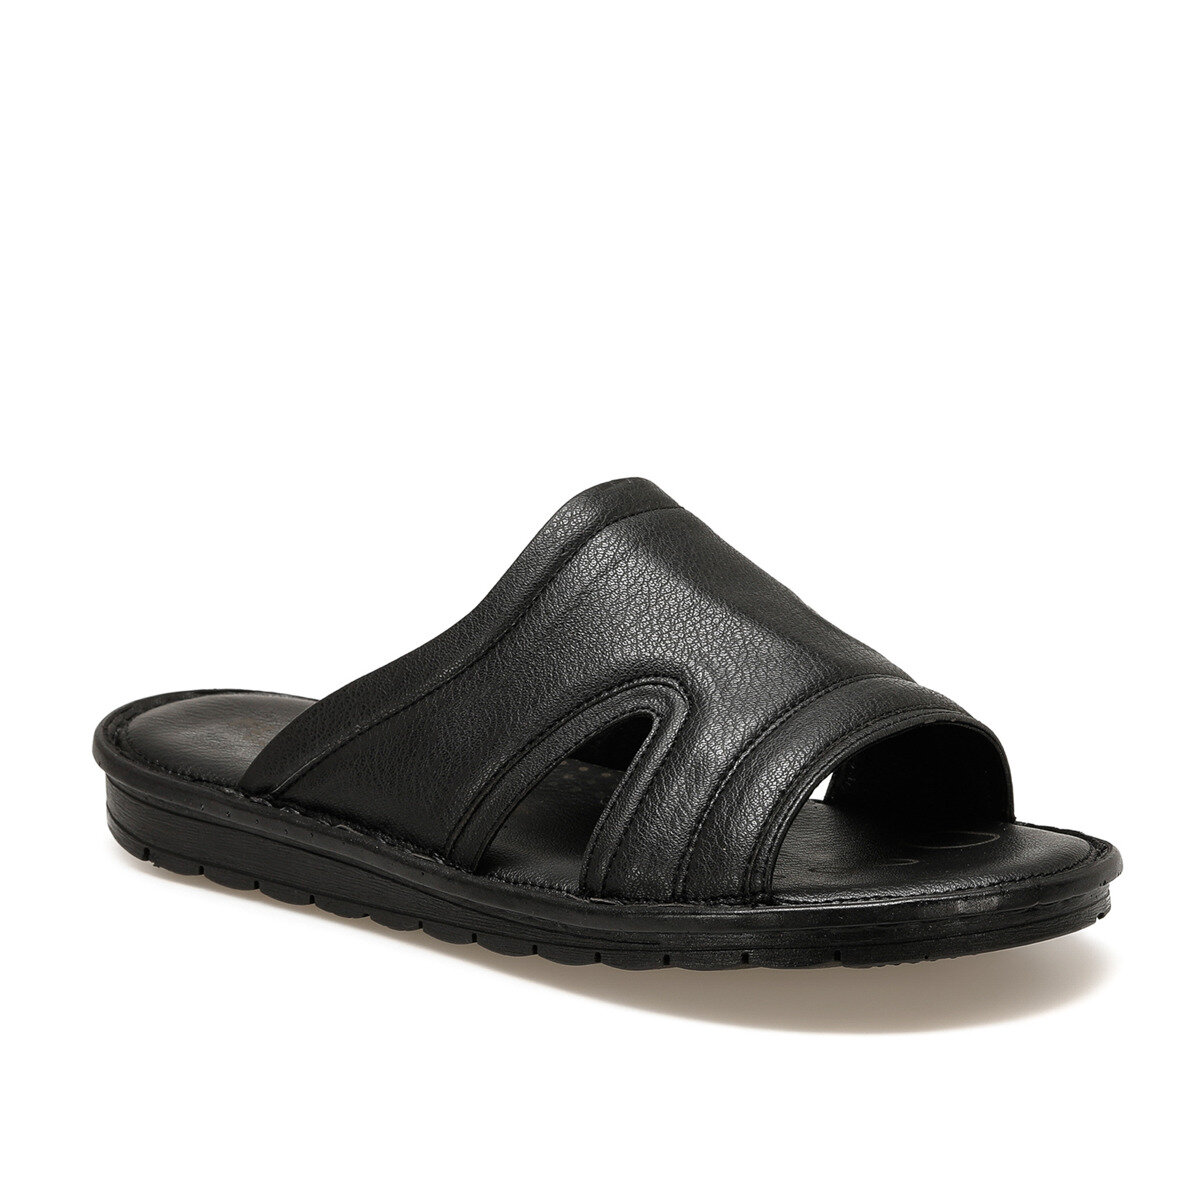 FLO 106 C Black Male Slippers Flexall